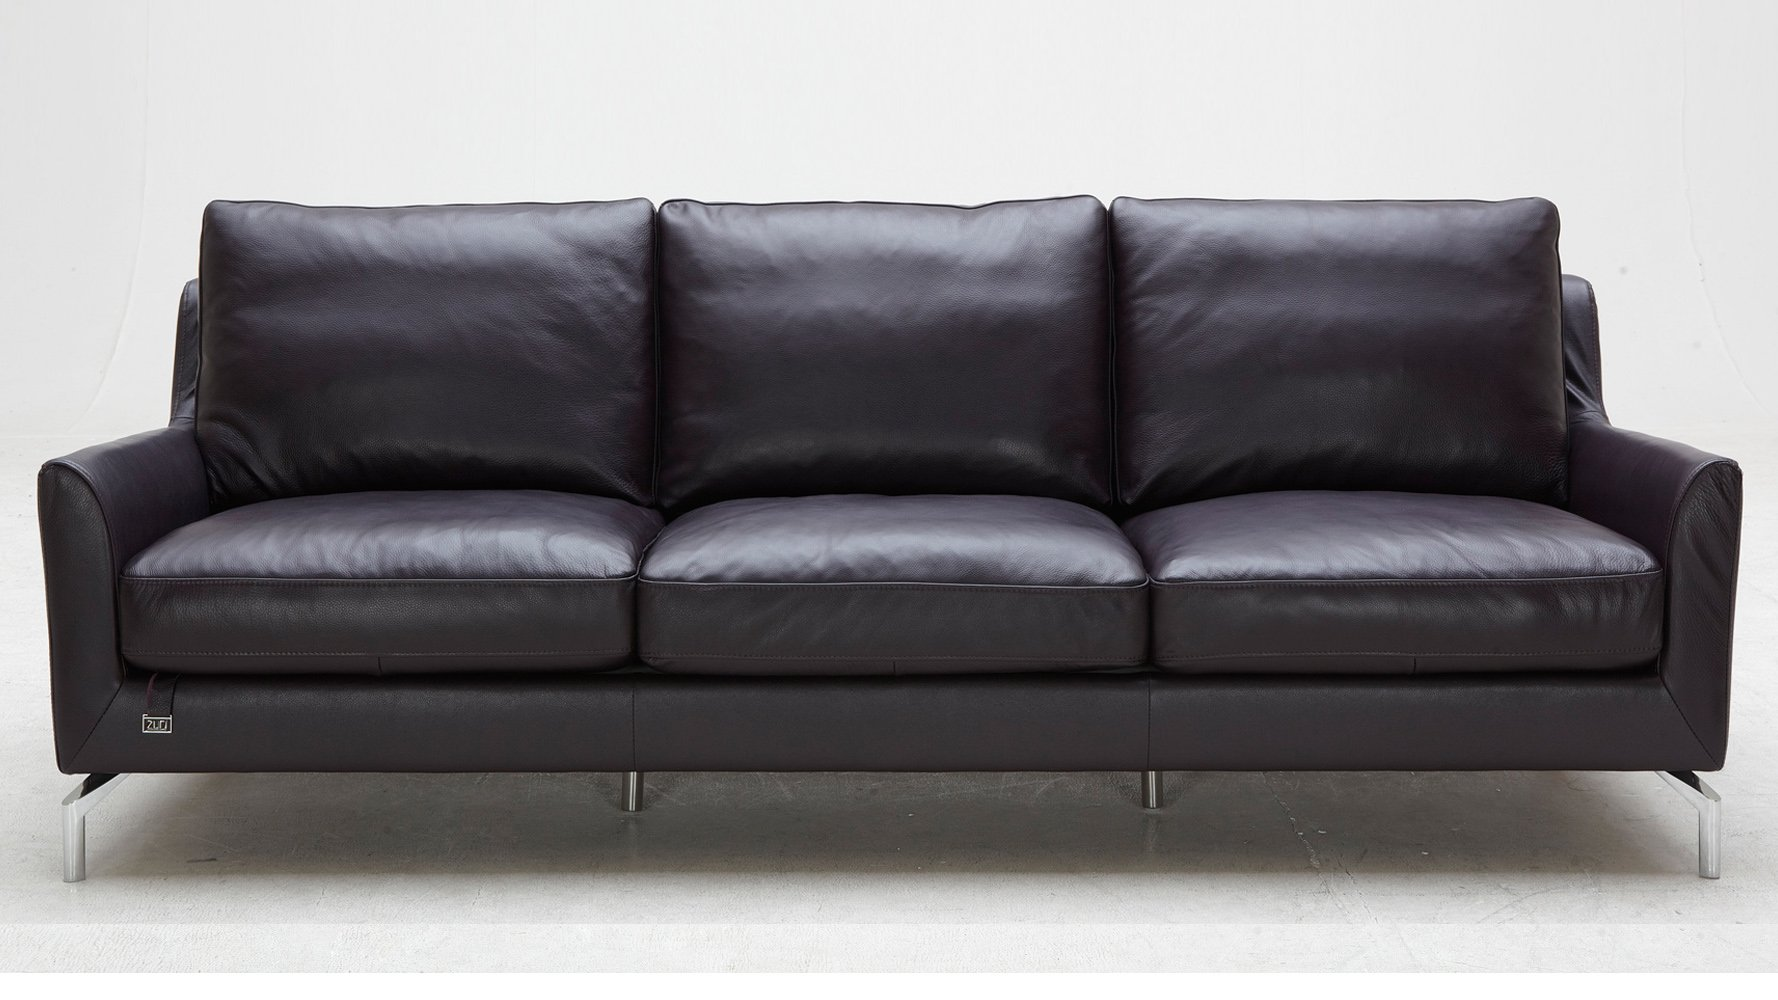 purple saxon leather sofa set with two chairs zuri furniture. Black Bedroom Furniture Sets. Home Design Ideas